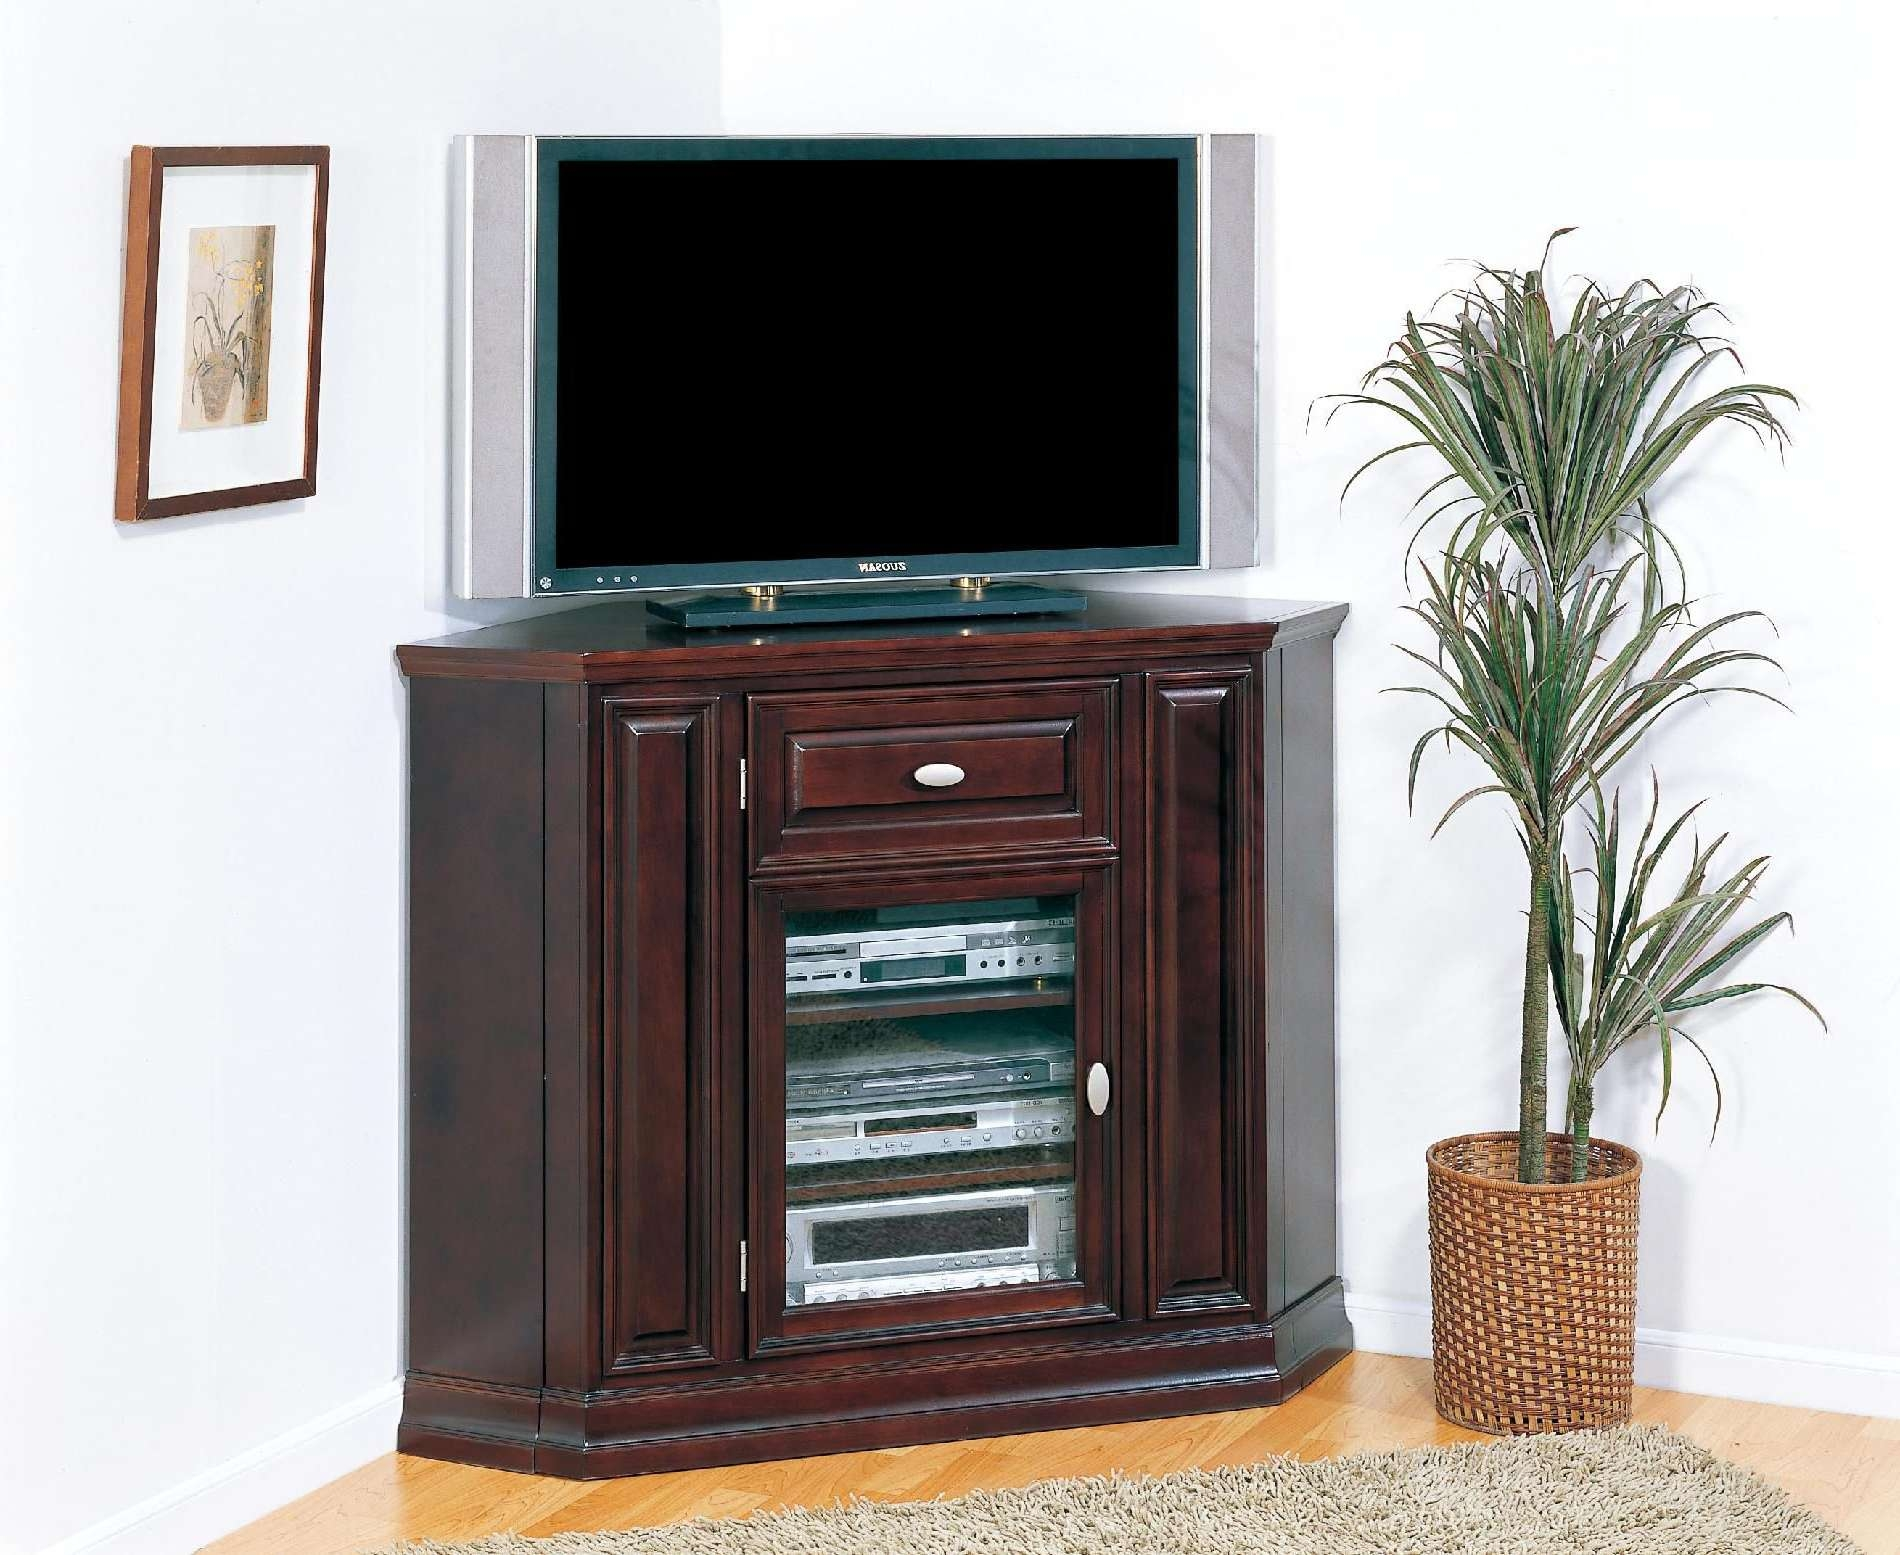 Tall Corner Tv Cabinet With Glass And Wood Doors Plus Drawer Of Intended For Corner Tv Stands With Drawers (View 7 of 15)